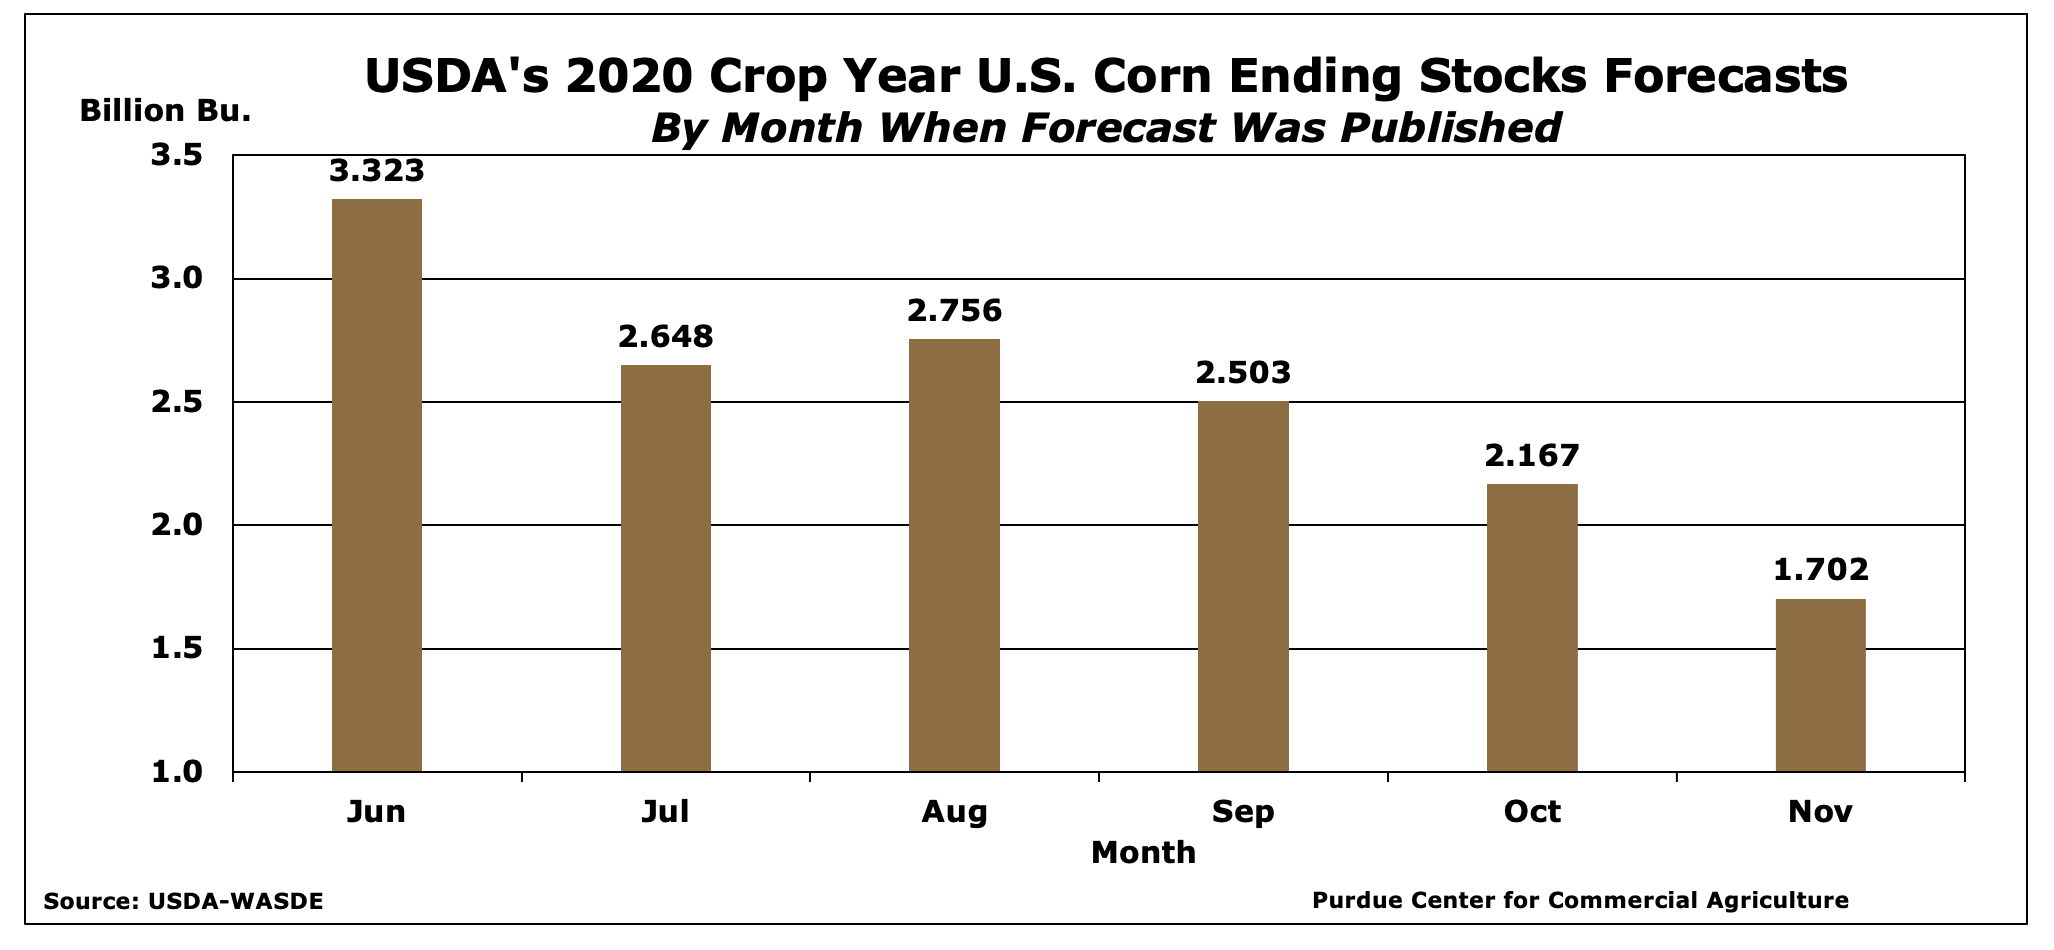 Figure 1: USDA's 2020 Crop Year U.S. Corn Ending Stocks Forecasts, by month when forecast was published.